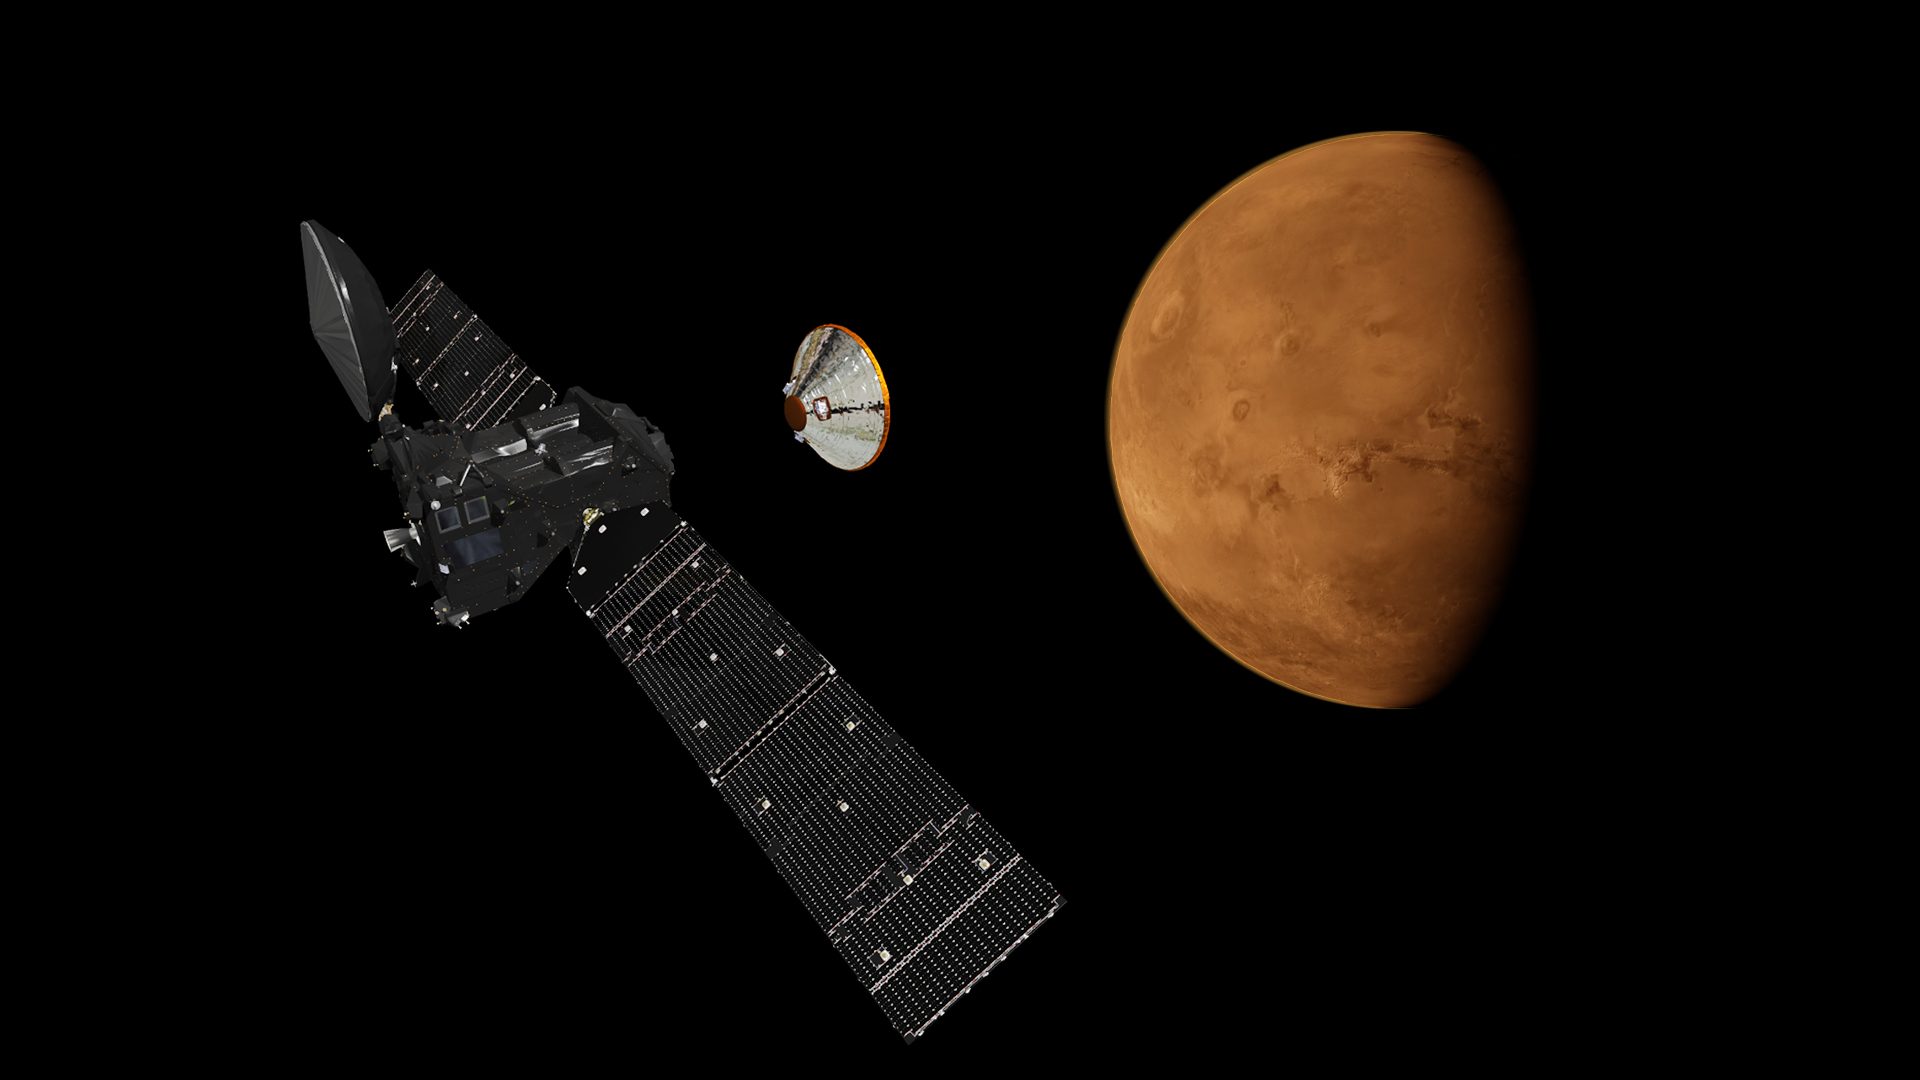 «EхoMars-2020»: Search for Life on the Red Planet